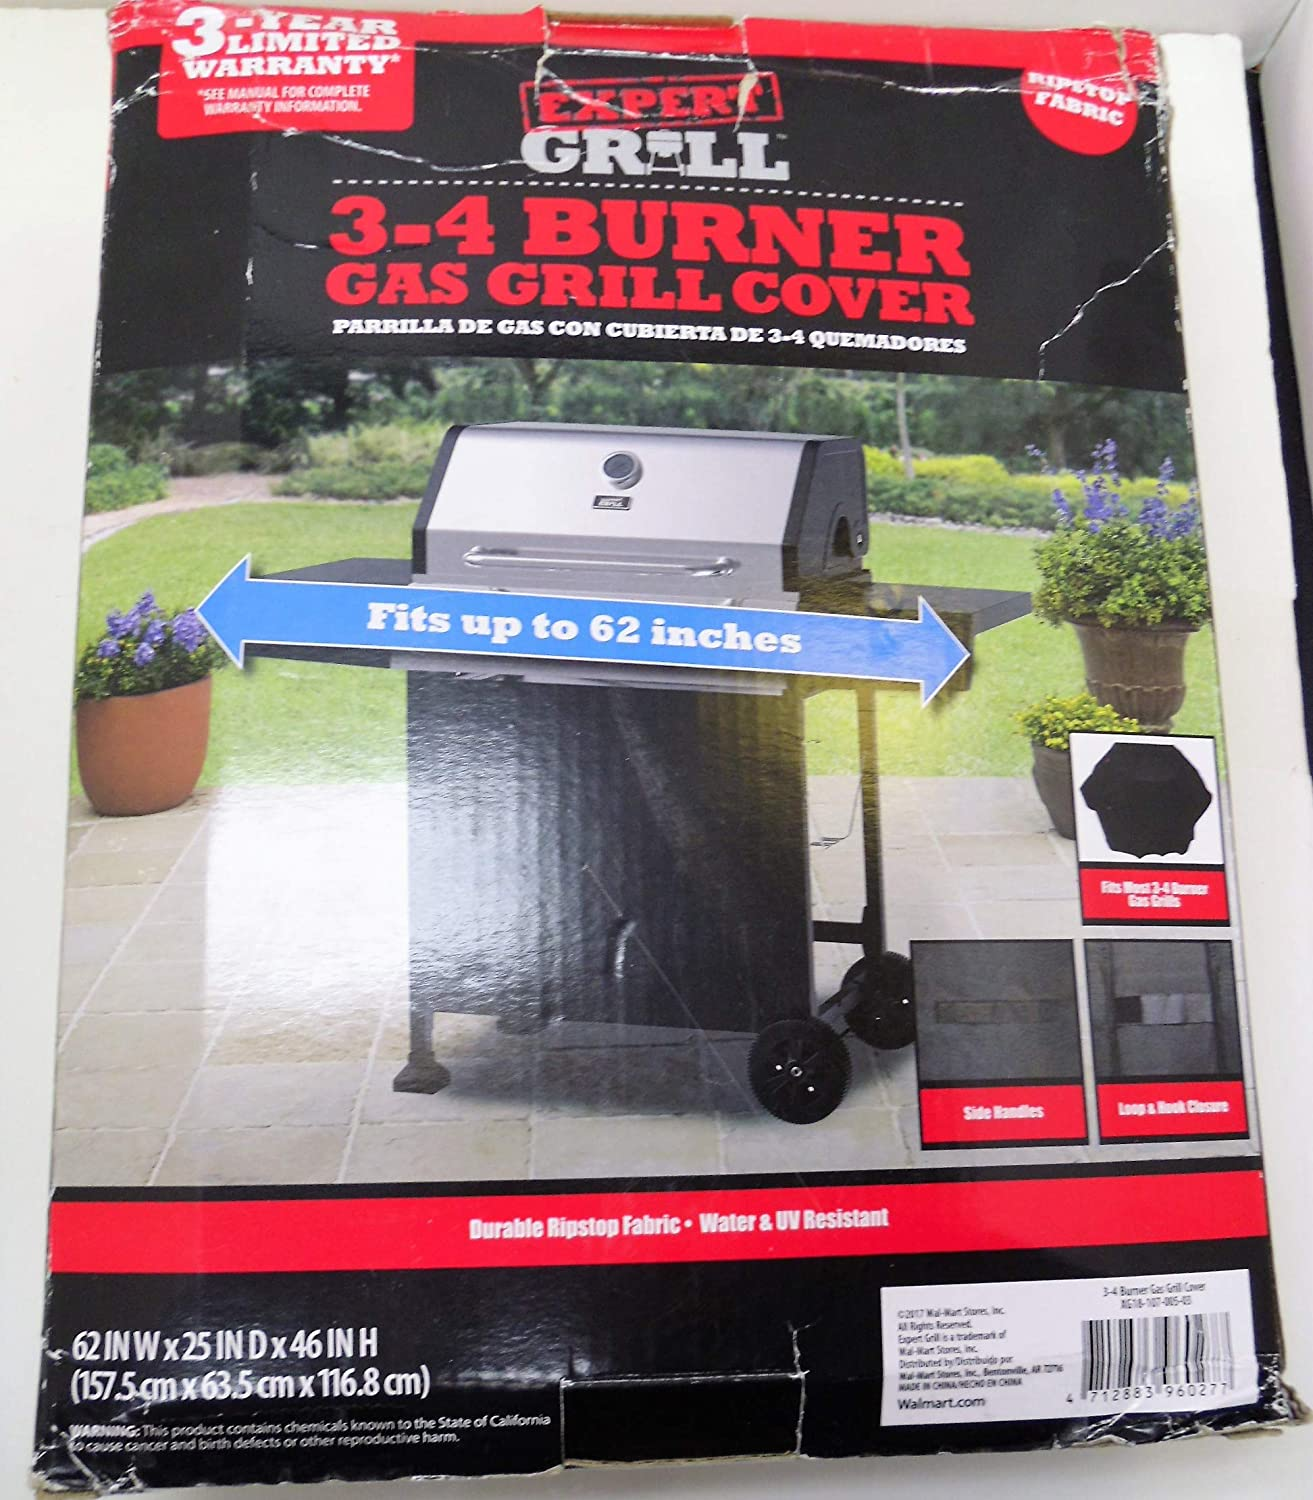 Amazon.com : Expert Grill 3-4 Burner Gas Grill Cover fits up ...